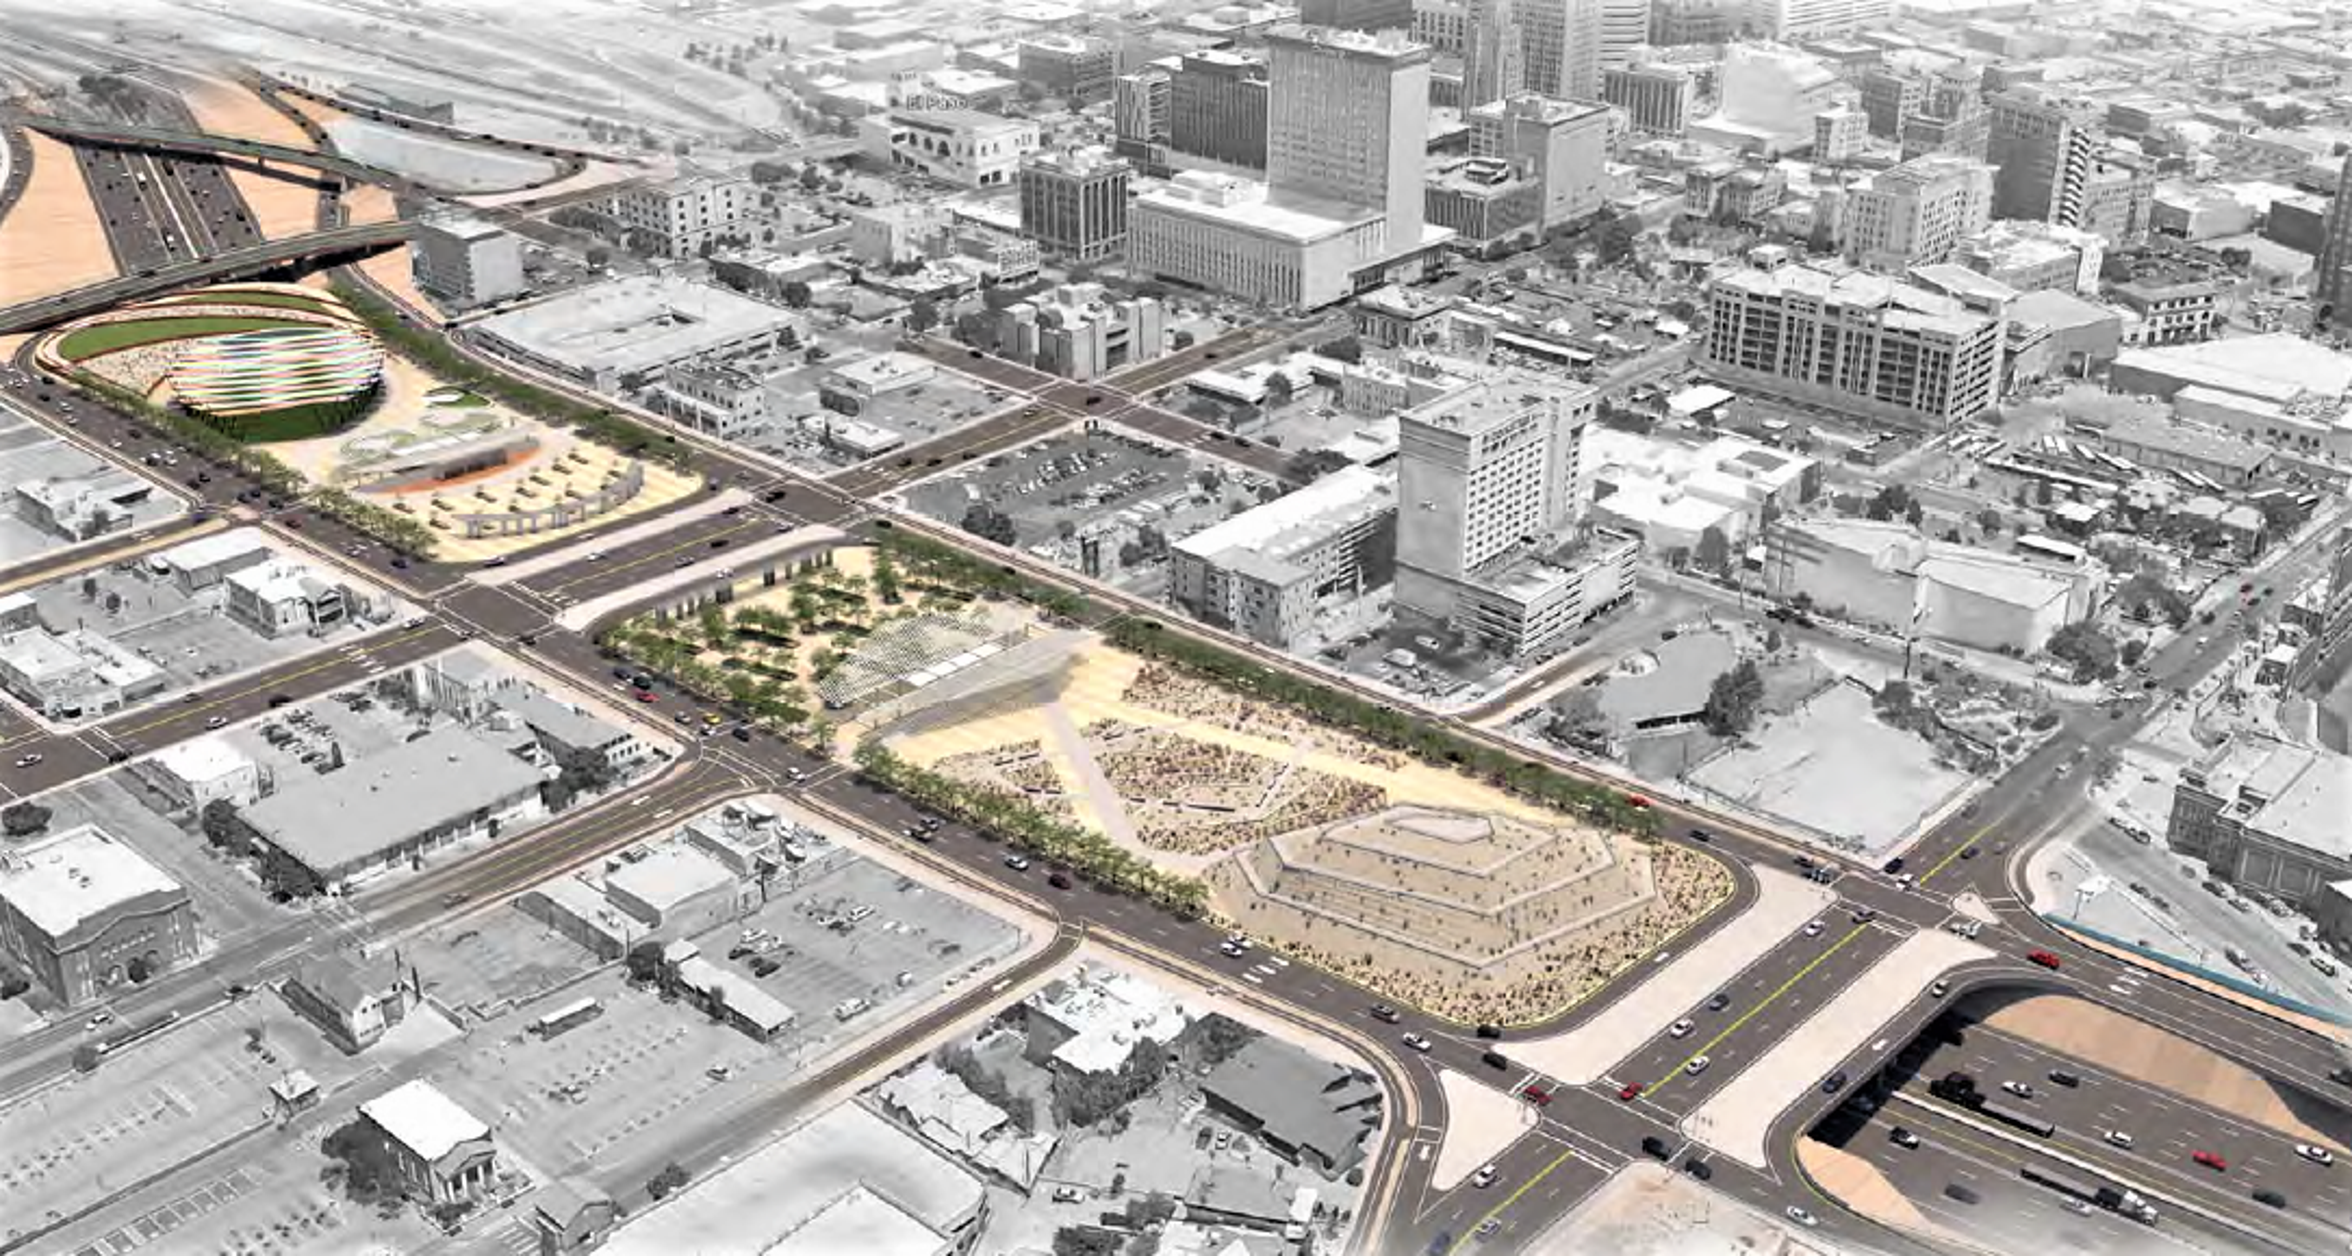 A park or parks would be built atop bridge decks above an expanded and rebuilt Interstate 10 through the middle of Downtown under concepts being studied by state highway planners.